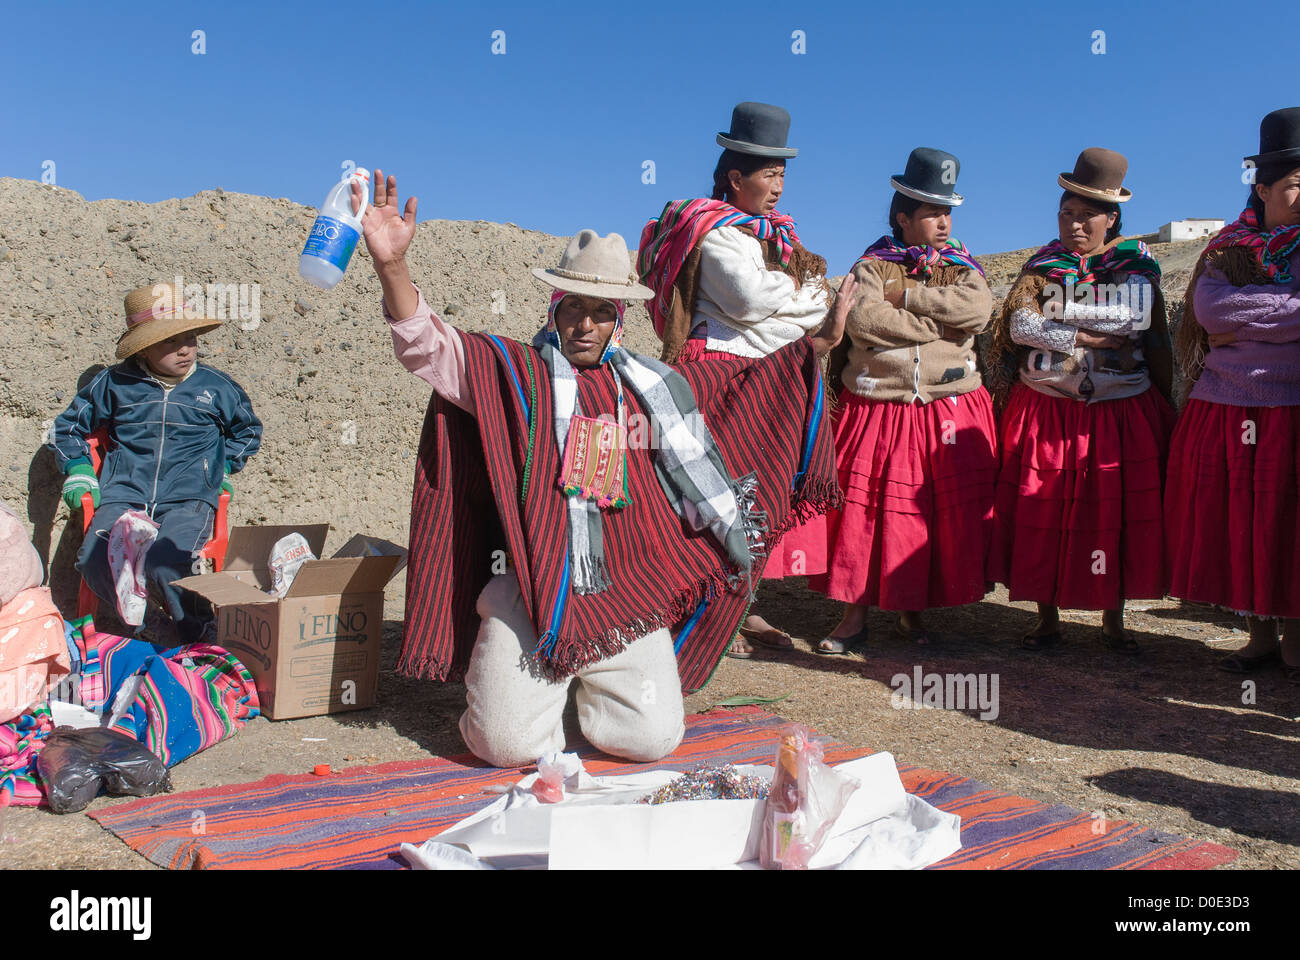 Ceremony to the Pachamama in the  bolivian cordillera - Stock Image